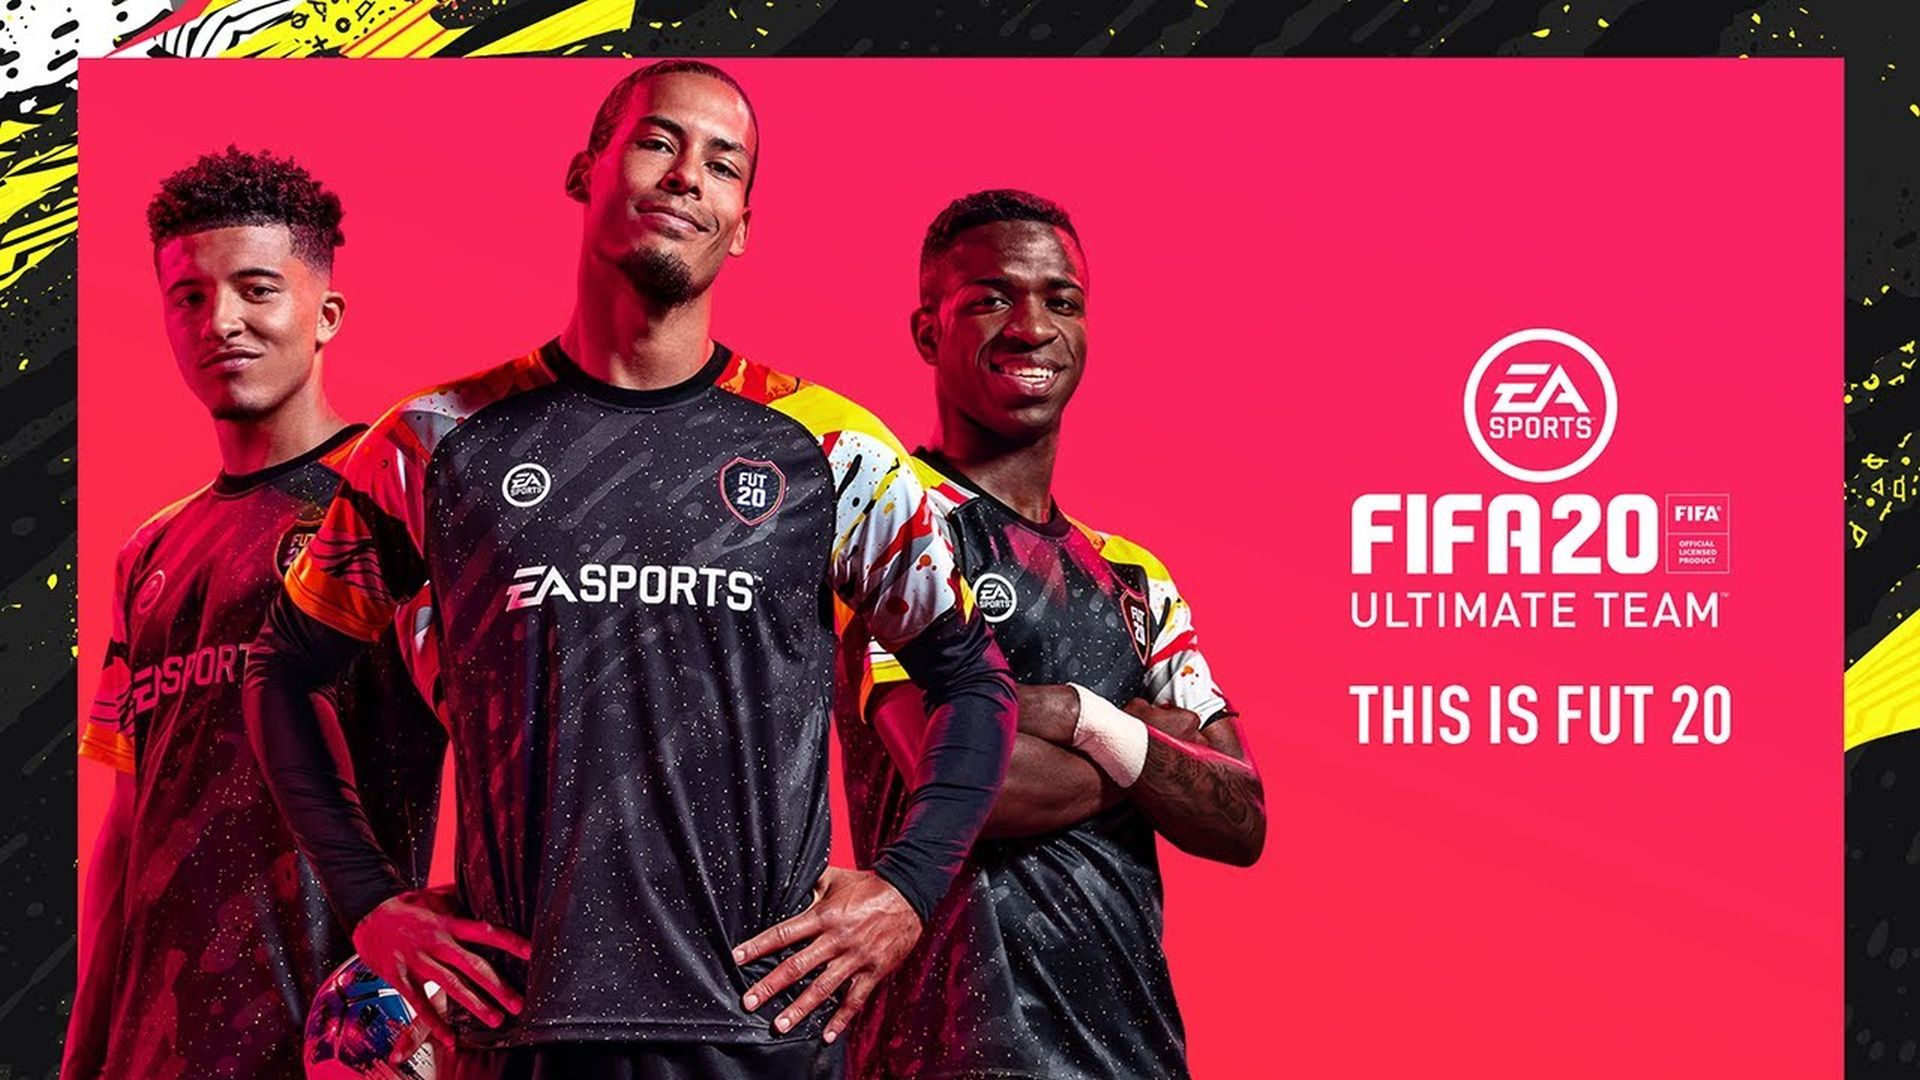 Fifa 20 Guide Beginners Guide For Ultimate Team And How To Build The Best Team